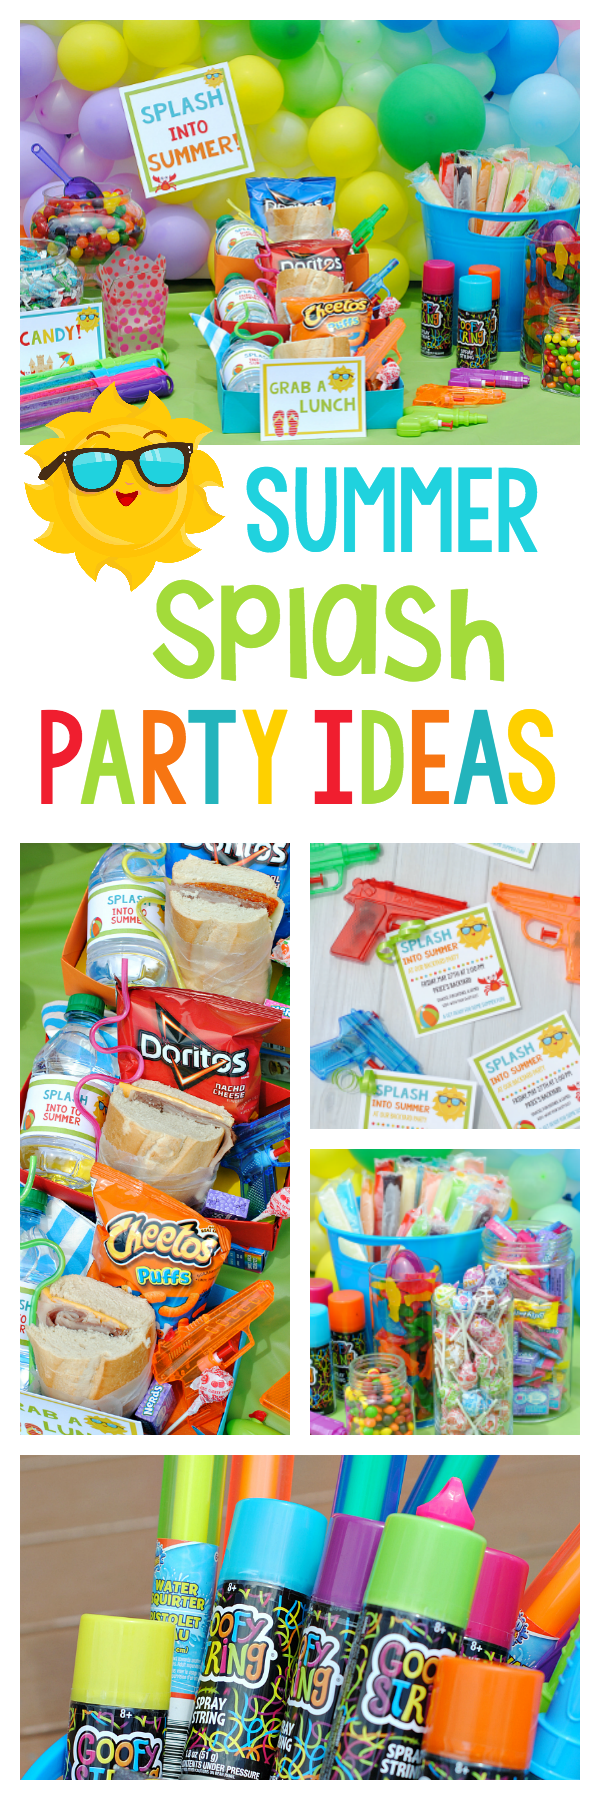 School's Out Party for Kids-Great party to throw to celebrate summer break with the kids. A fun kids summer party for kids of any age! Water party ideas with great games and food.  #summerparty #summer #kids #kidsactivities #kidsparty #kidsparties #summerfun